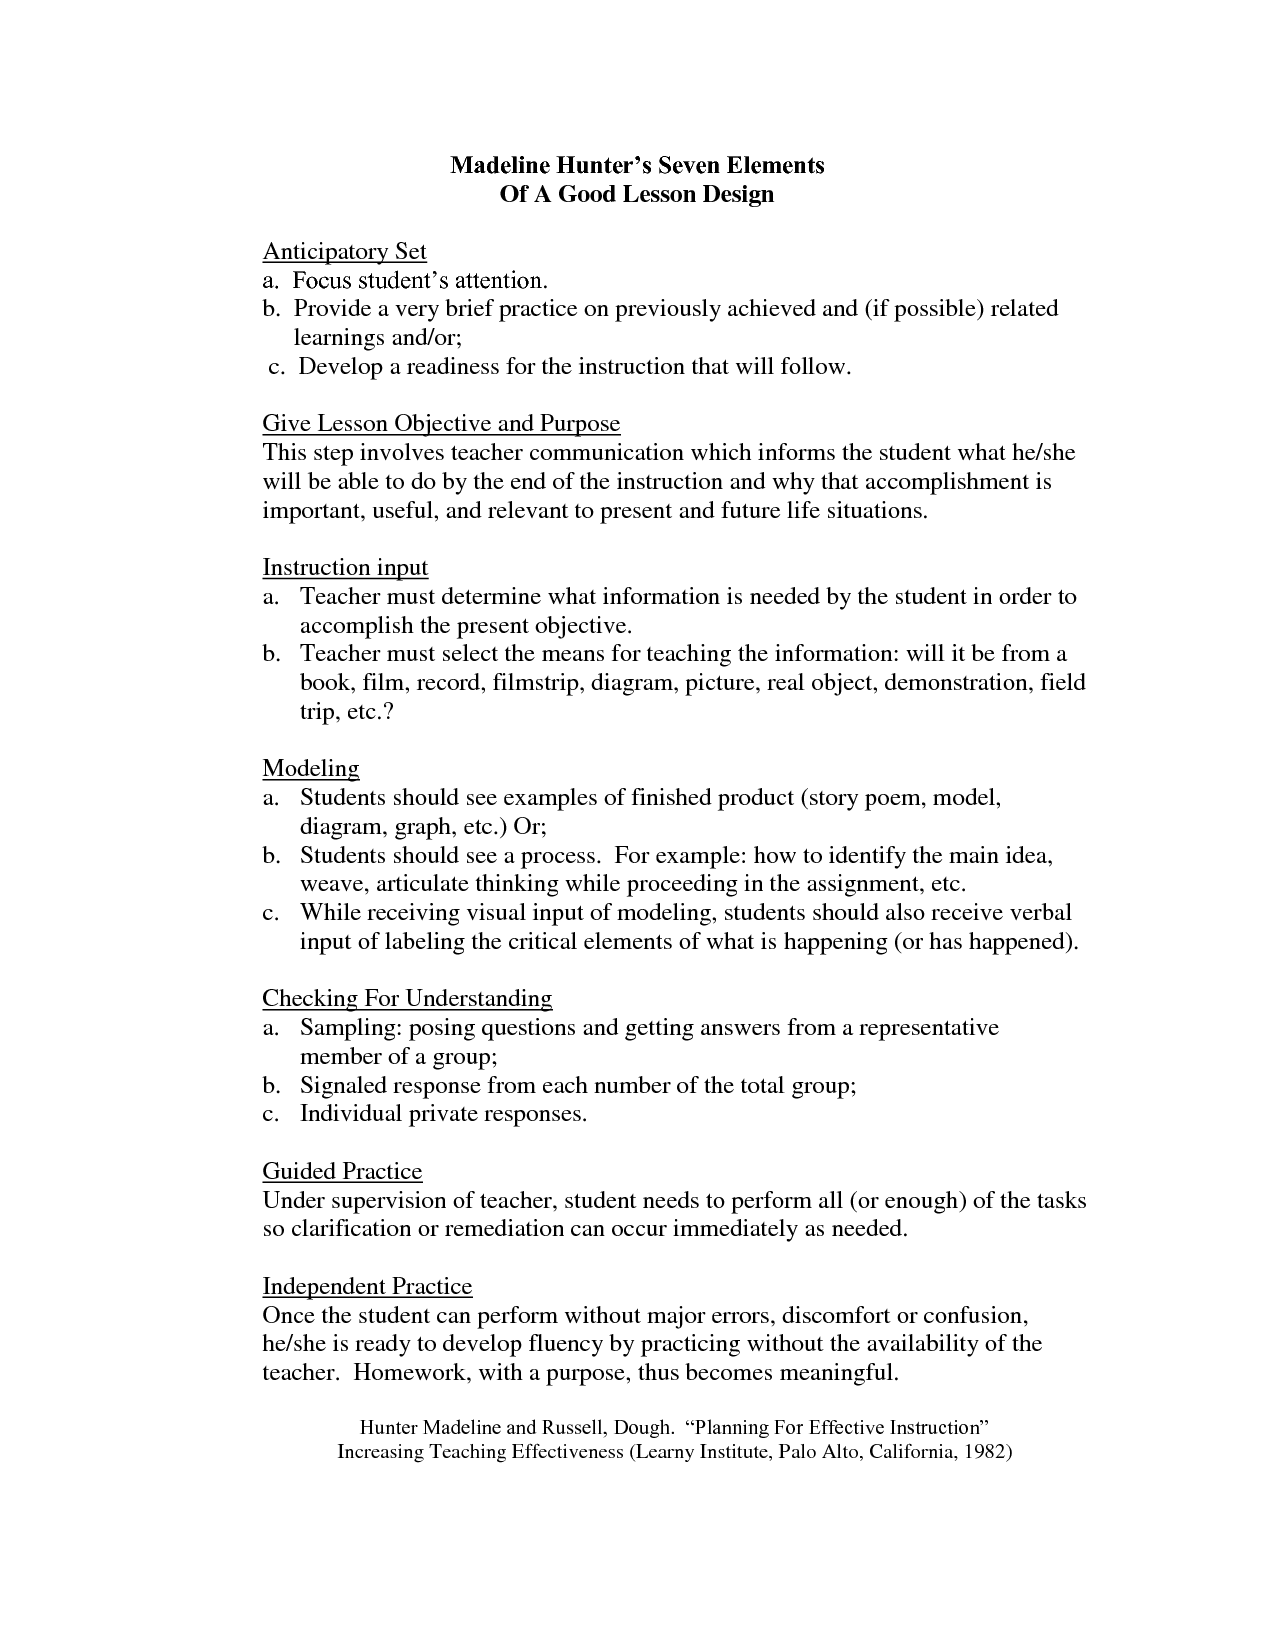 Madeline Hunter Lesson Plan Format Template Google Search Th - Madeline hunter lesson plan template word